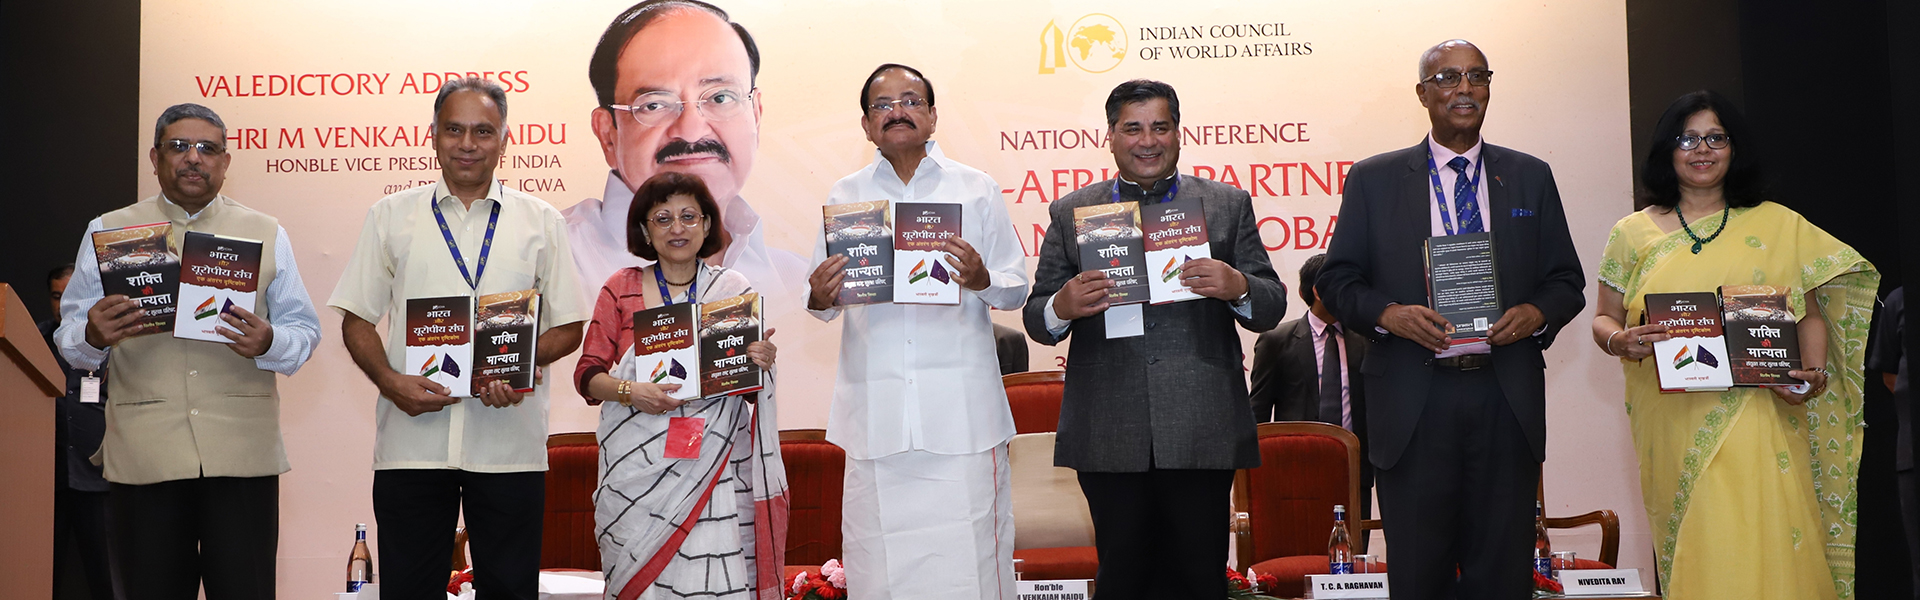 Shri M. Venkaiah Naidu, Hon'ble Vice President of India and President ICWA releasing the ICWA Publications,  4 September 2019.